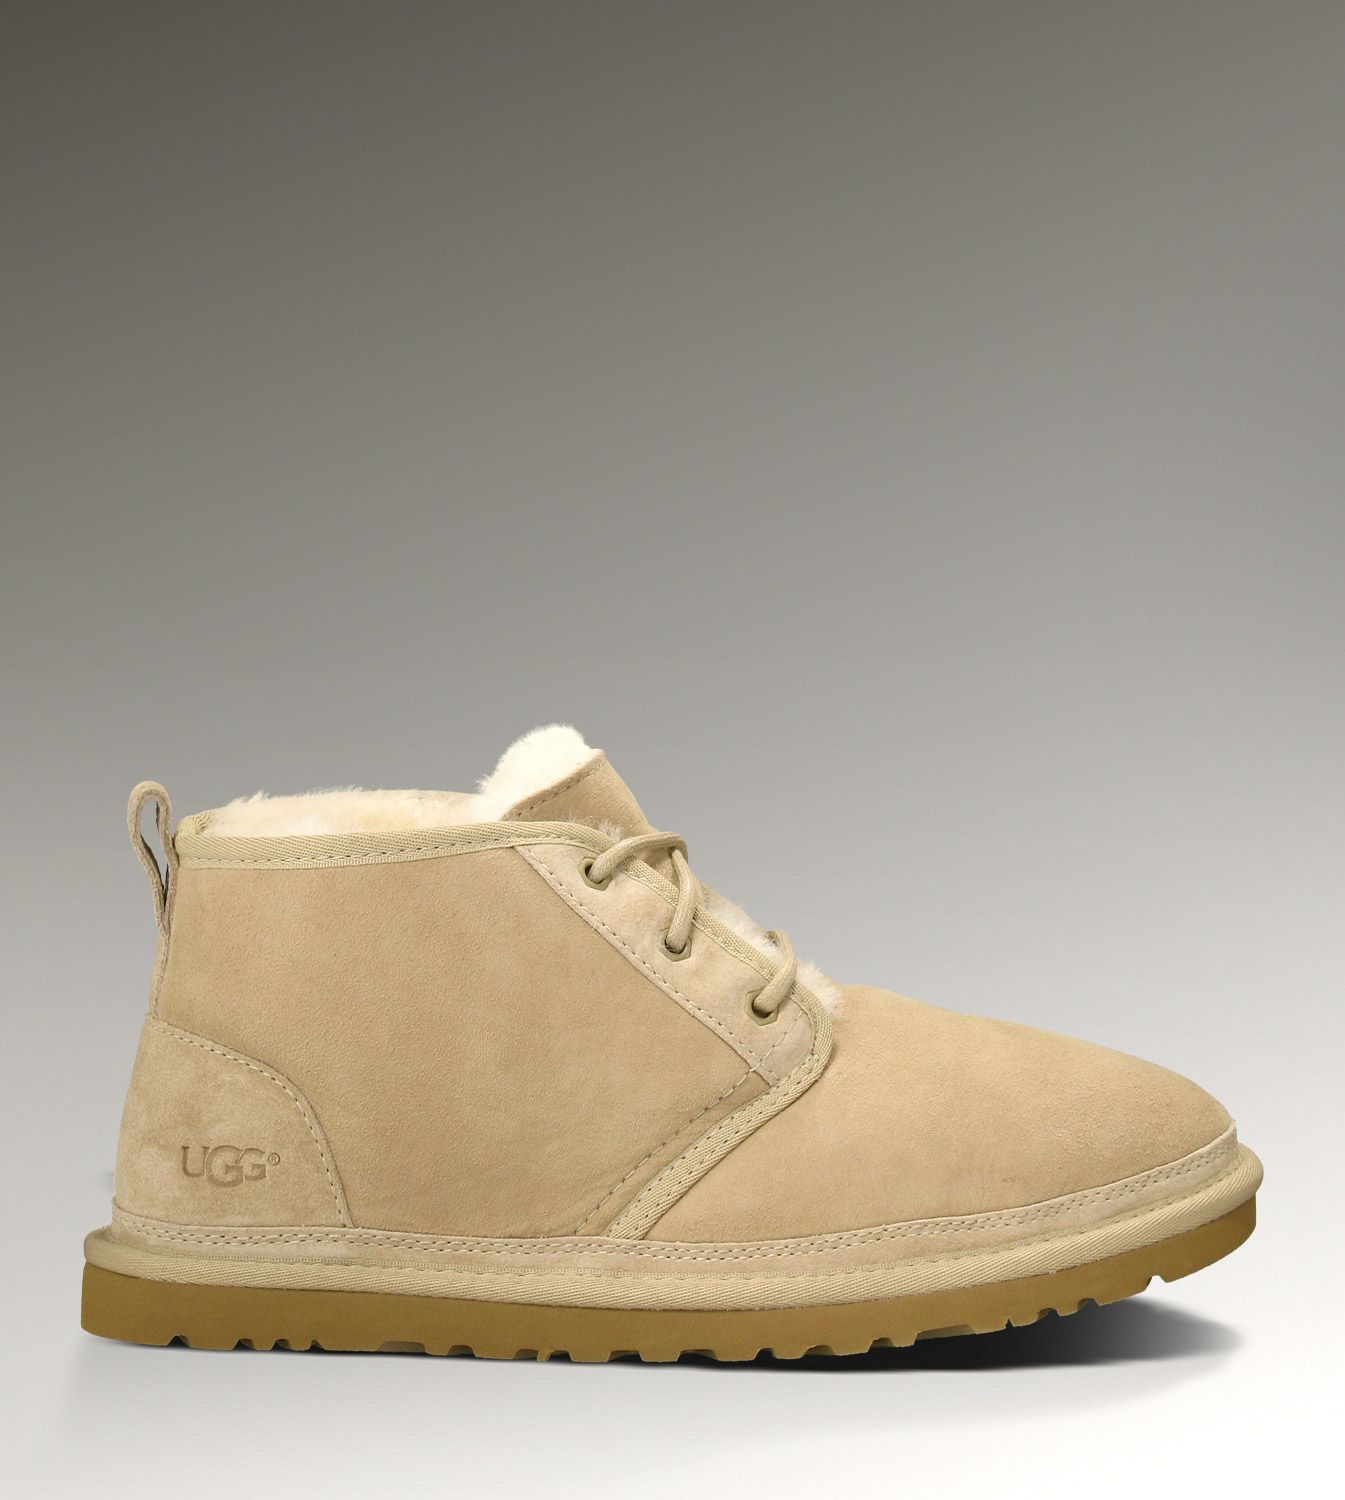 446df6a87e5 Dog Posts on | ugg boots sale | Shoes, Ugg neumel, Uggs